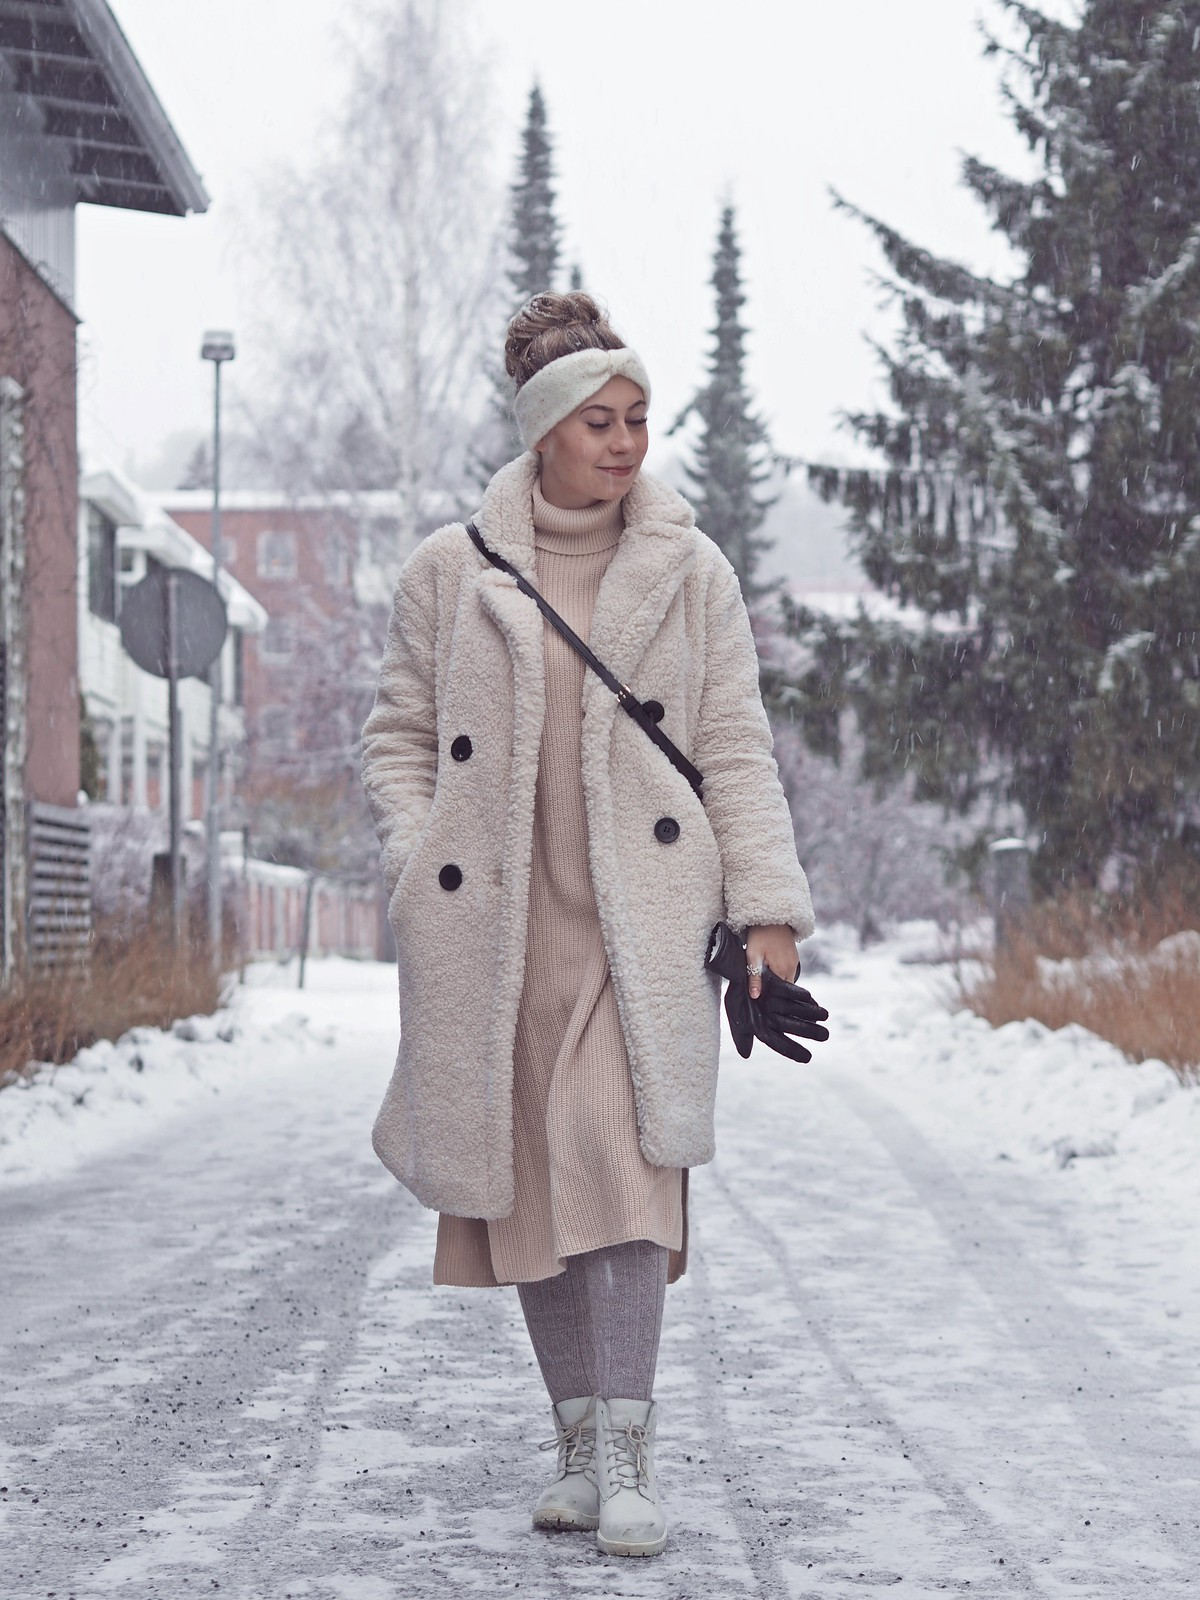 winter outifit ideas